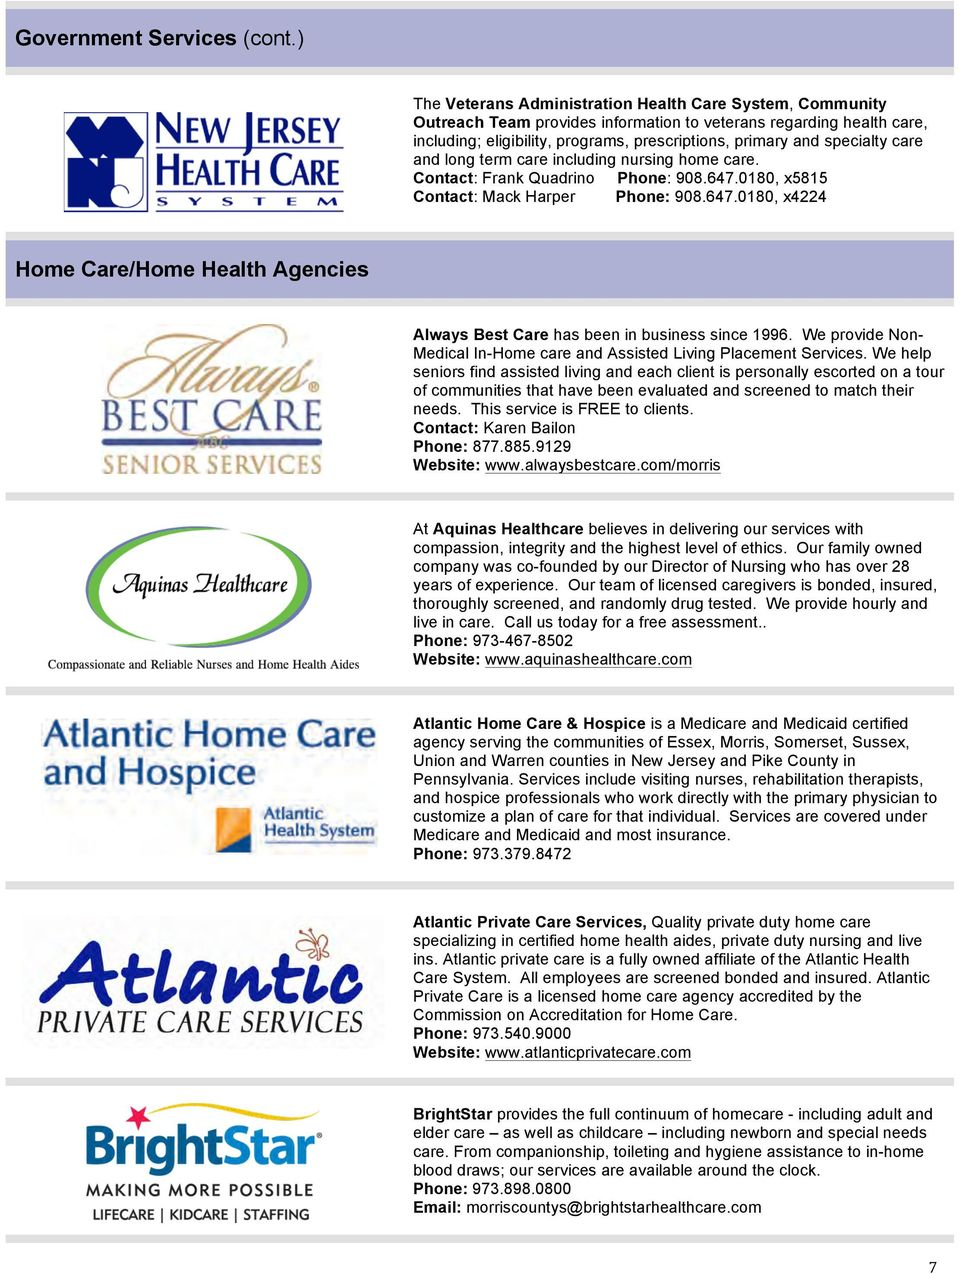 specialty care and long term care including nursing home care. Contact: Frank Quadrino Phone: 908.647.0180, x5815 Contact: Mack Harper Phone: 908.647.0180, x4224 Home Care/Home Health Agencies Always Best Care has been in business since 1996.